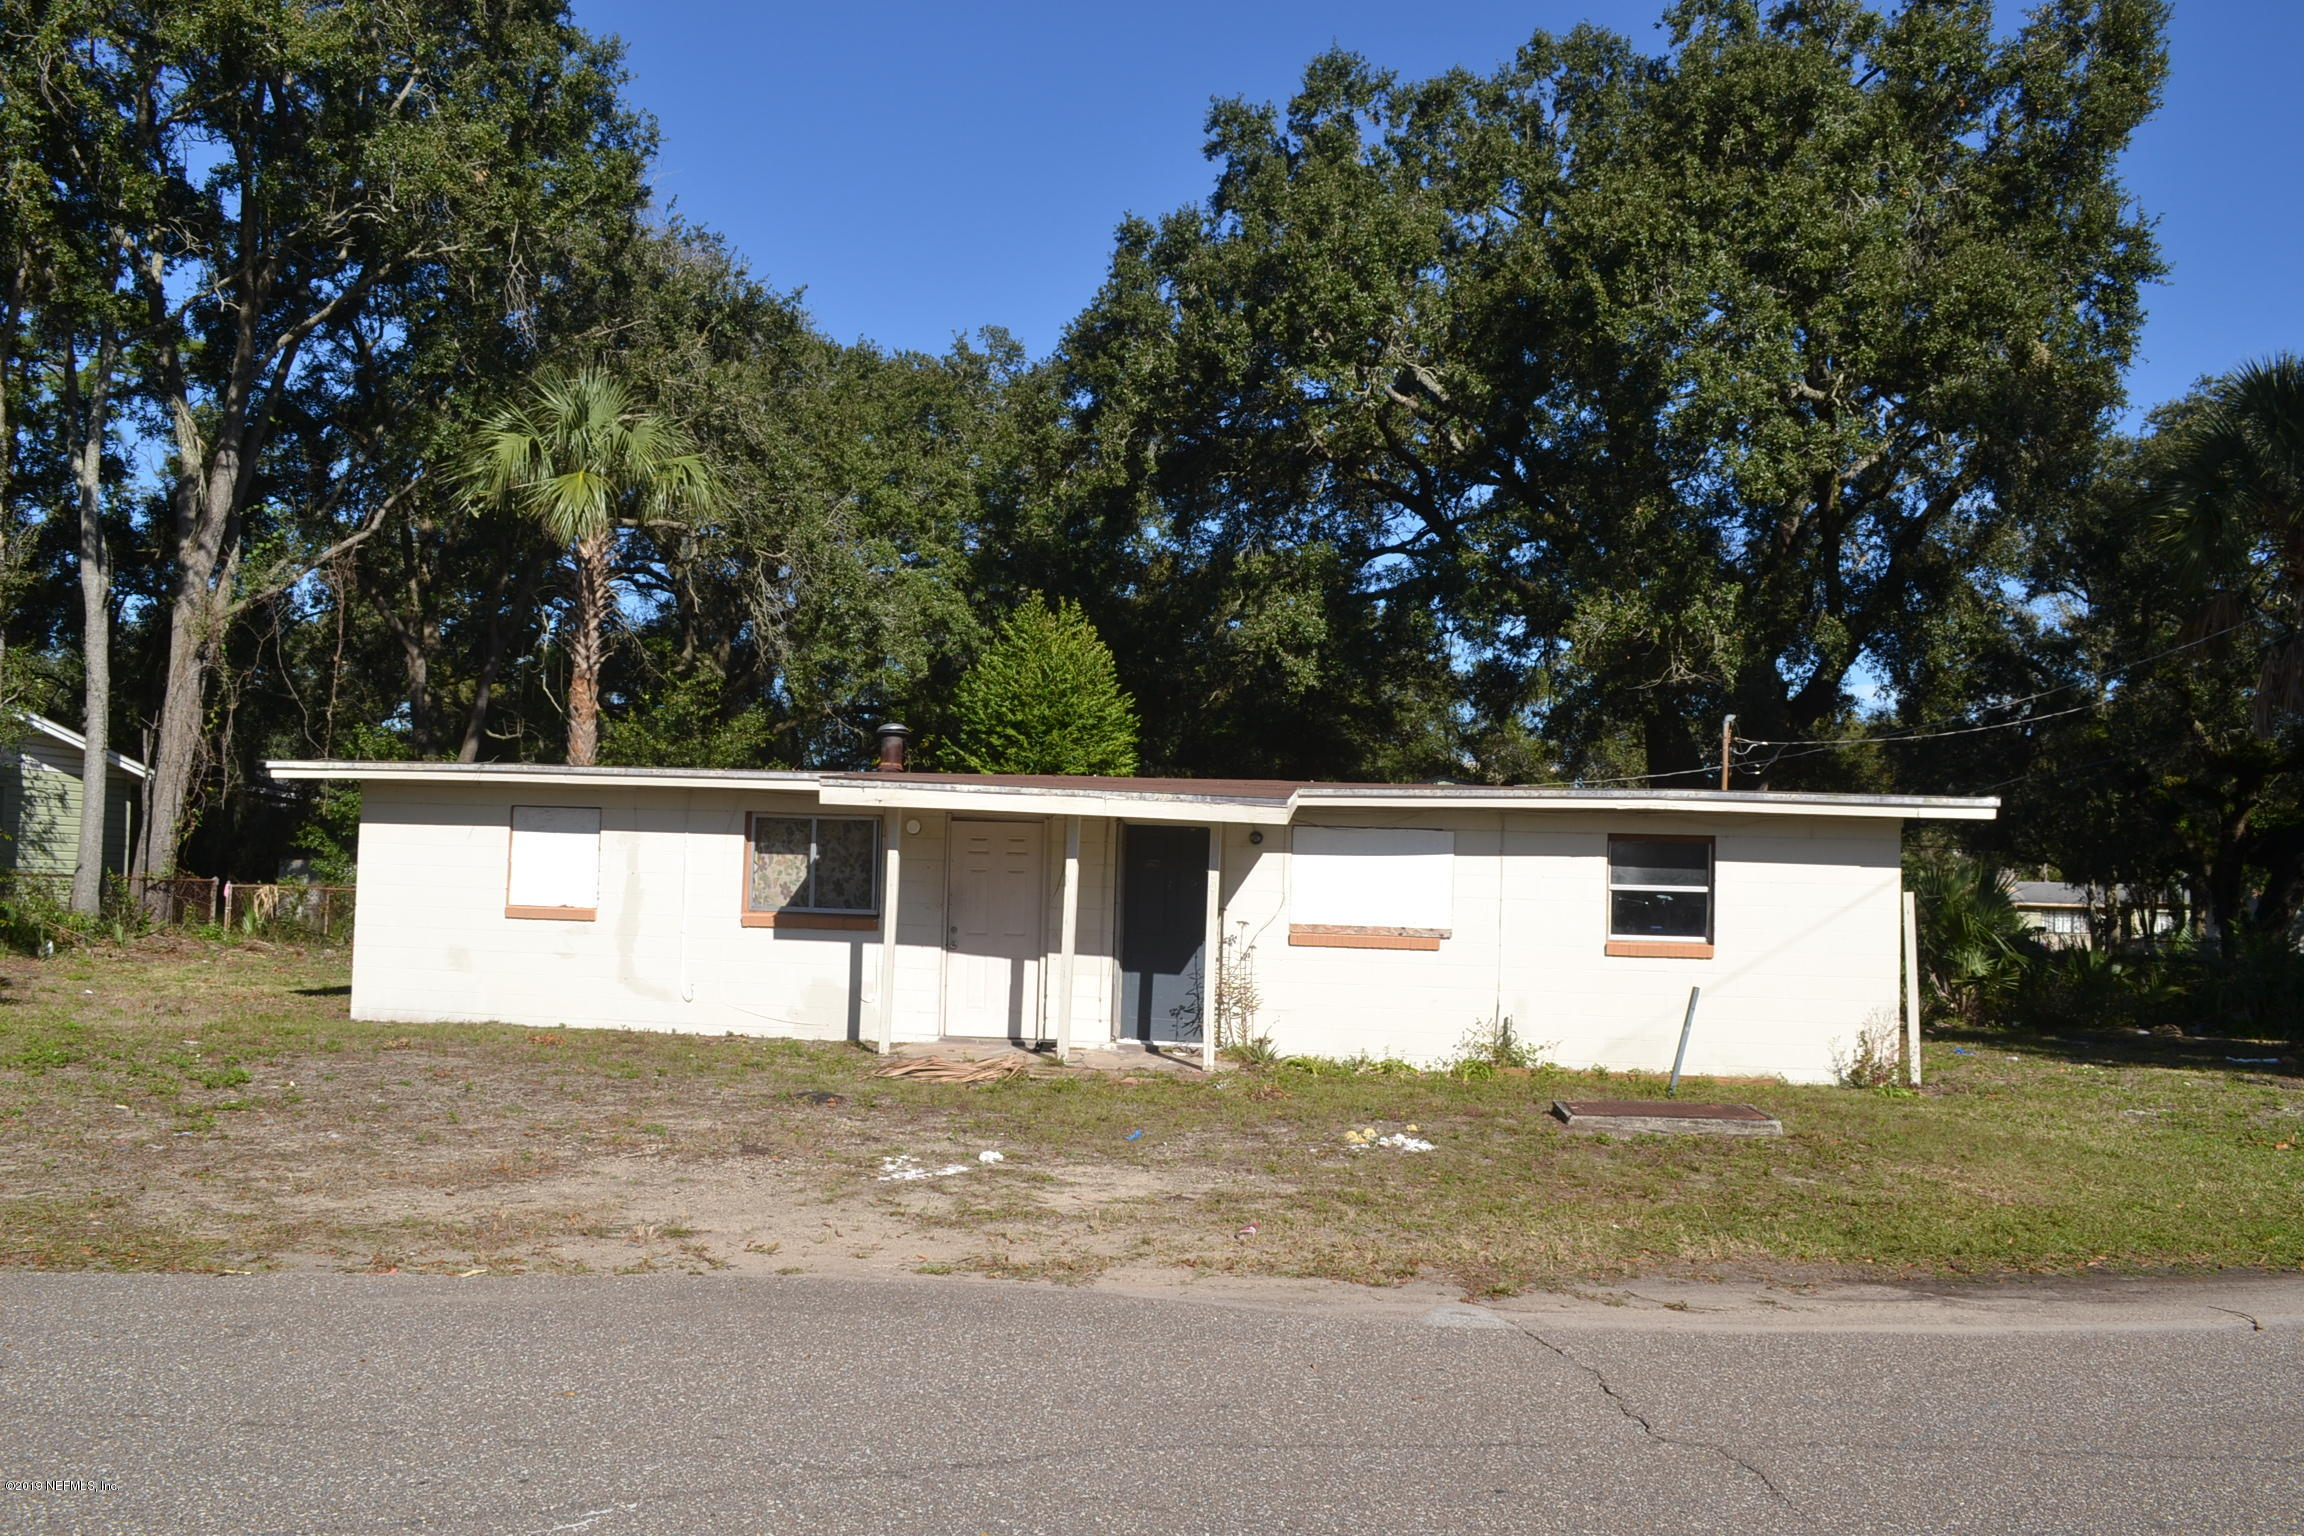 2048 THELMA, JACKSONVILLE, FLORIDA 32206, 4 Bedrooms Bedrooms, ,2 BathroomsBathrooms,Residential - single family,For sale,THELMA,974569